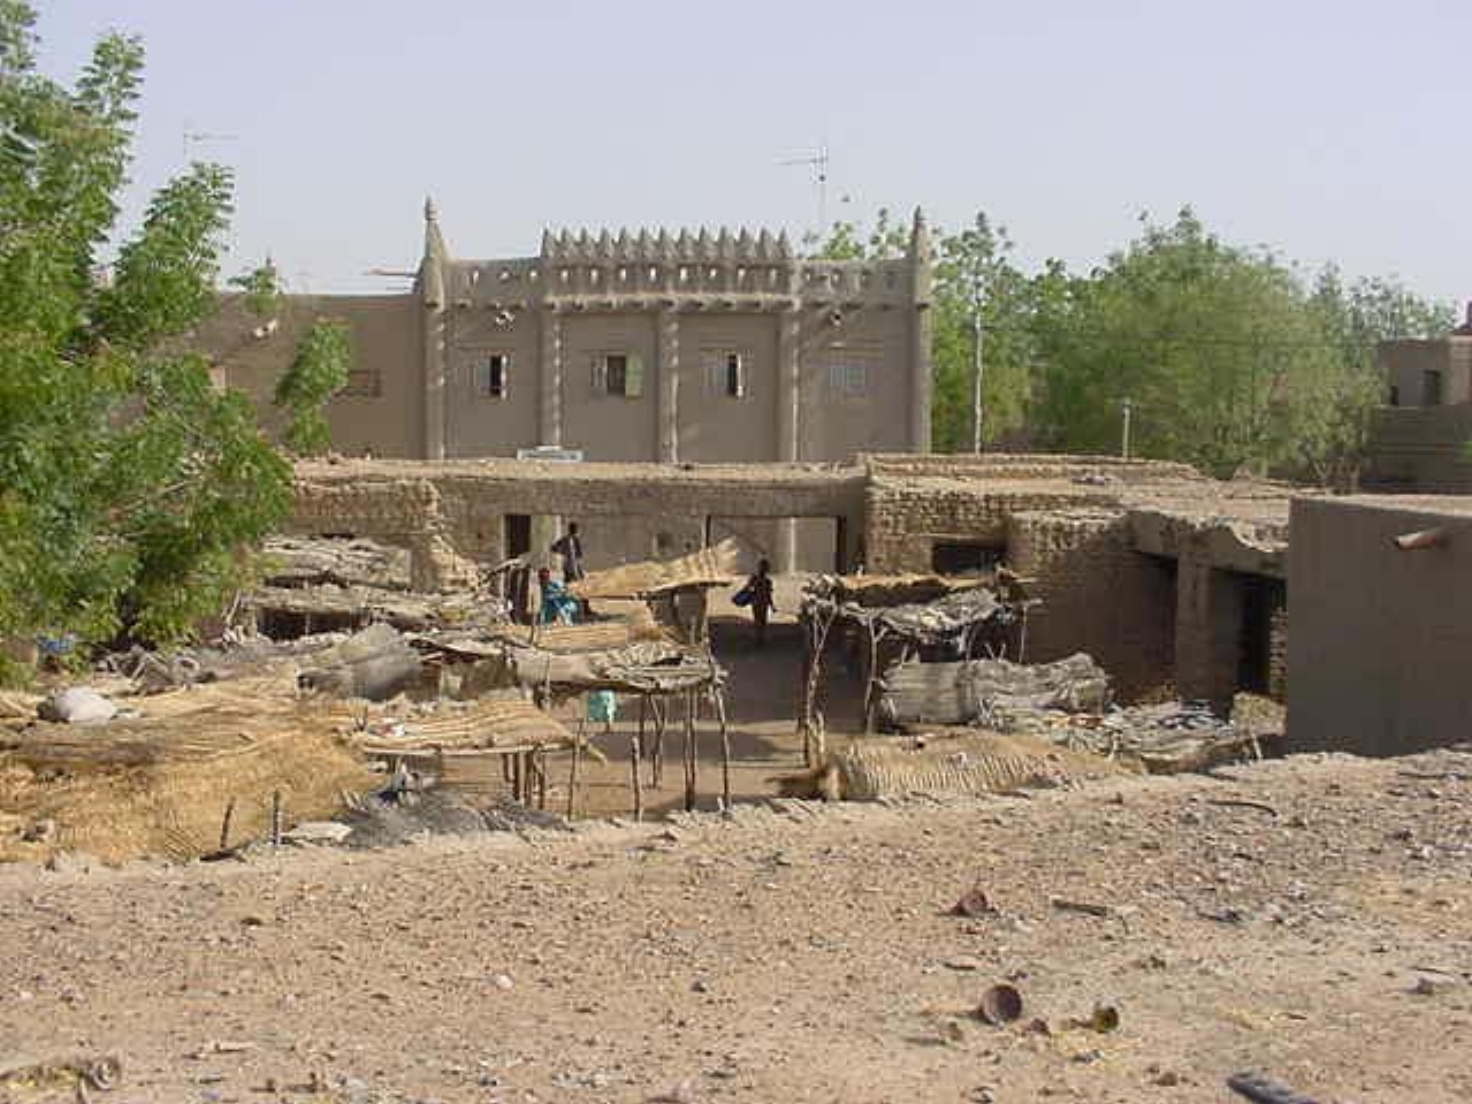 Mud structures of Djenne